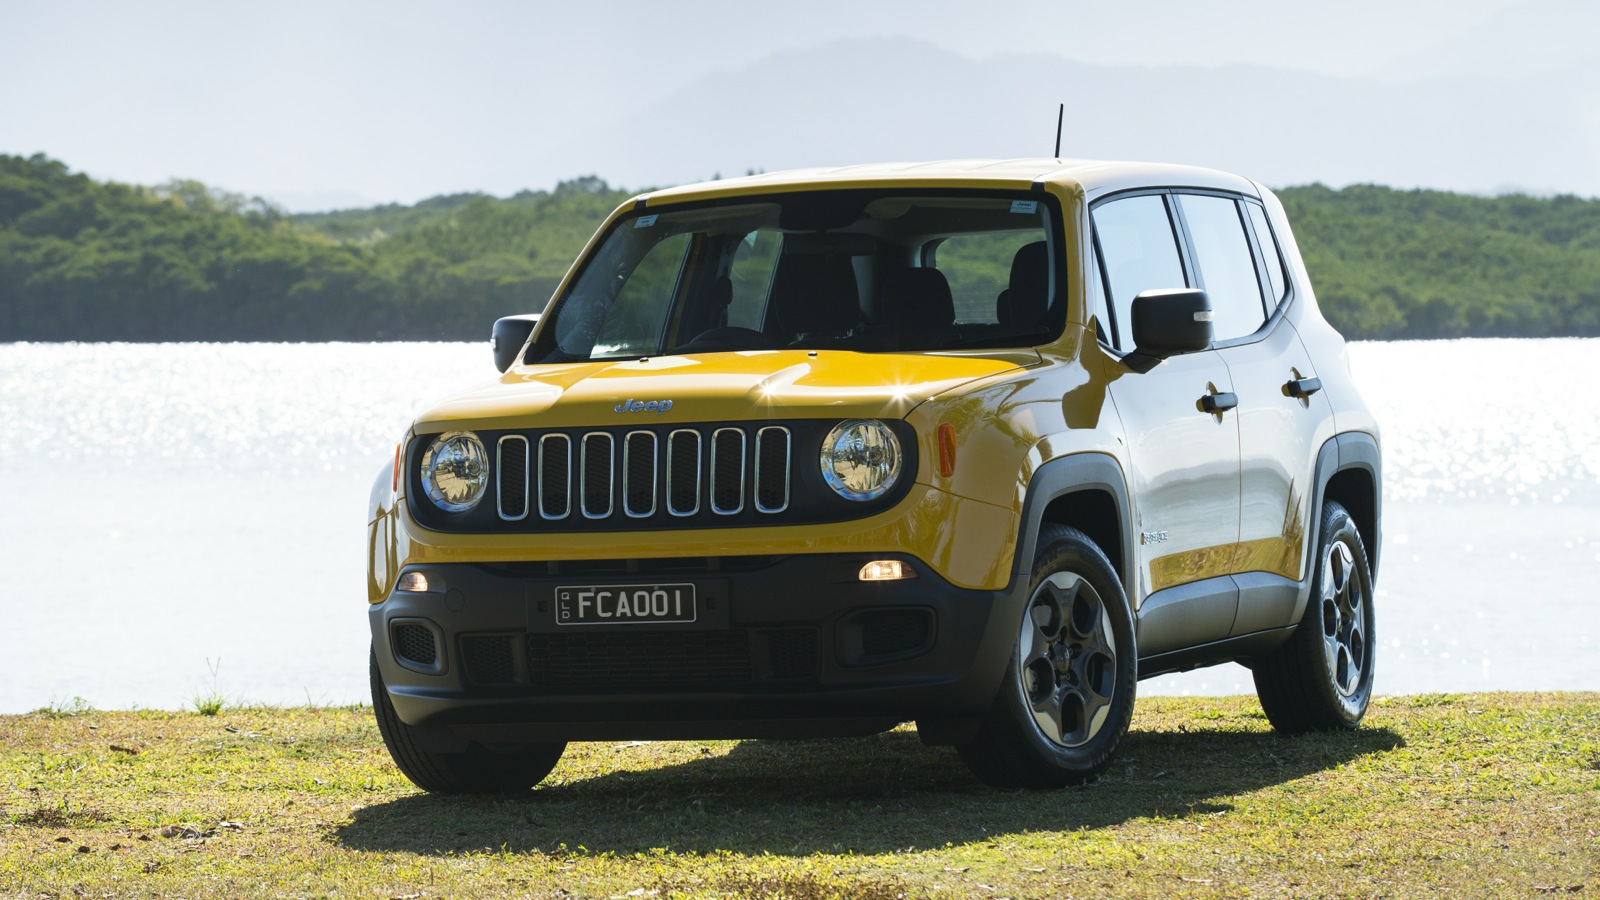 jeep renegade prices cut again photos 1 of 2. Black Bedroom Furniture Sets. Home Design Ideas